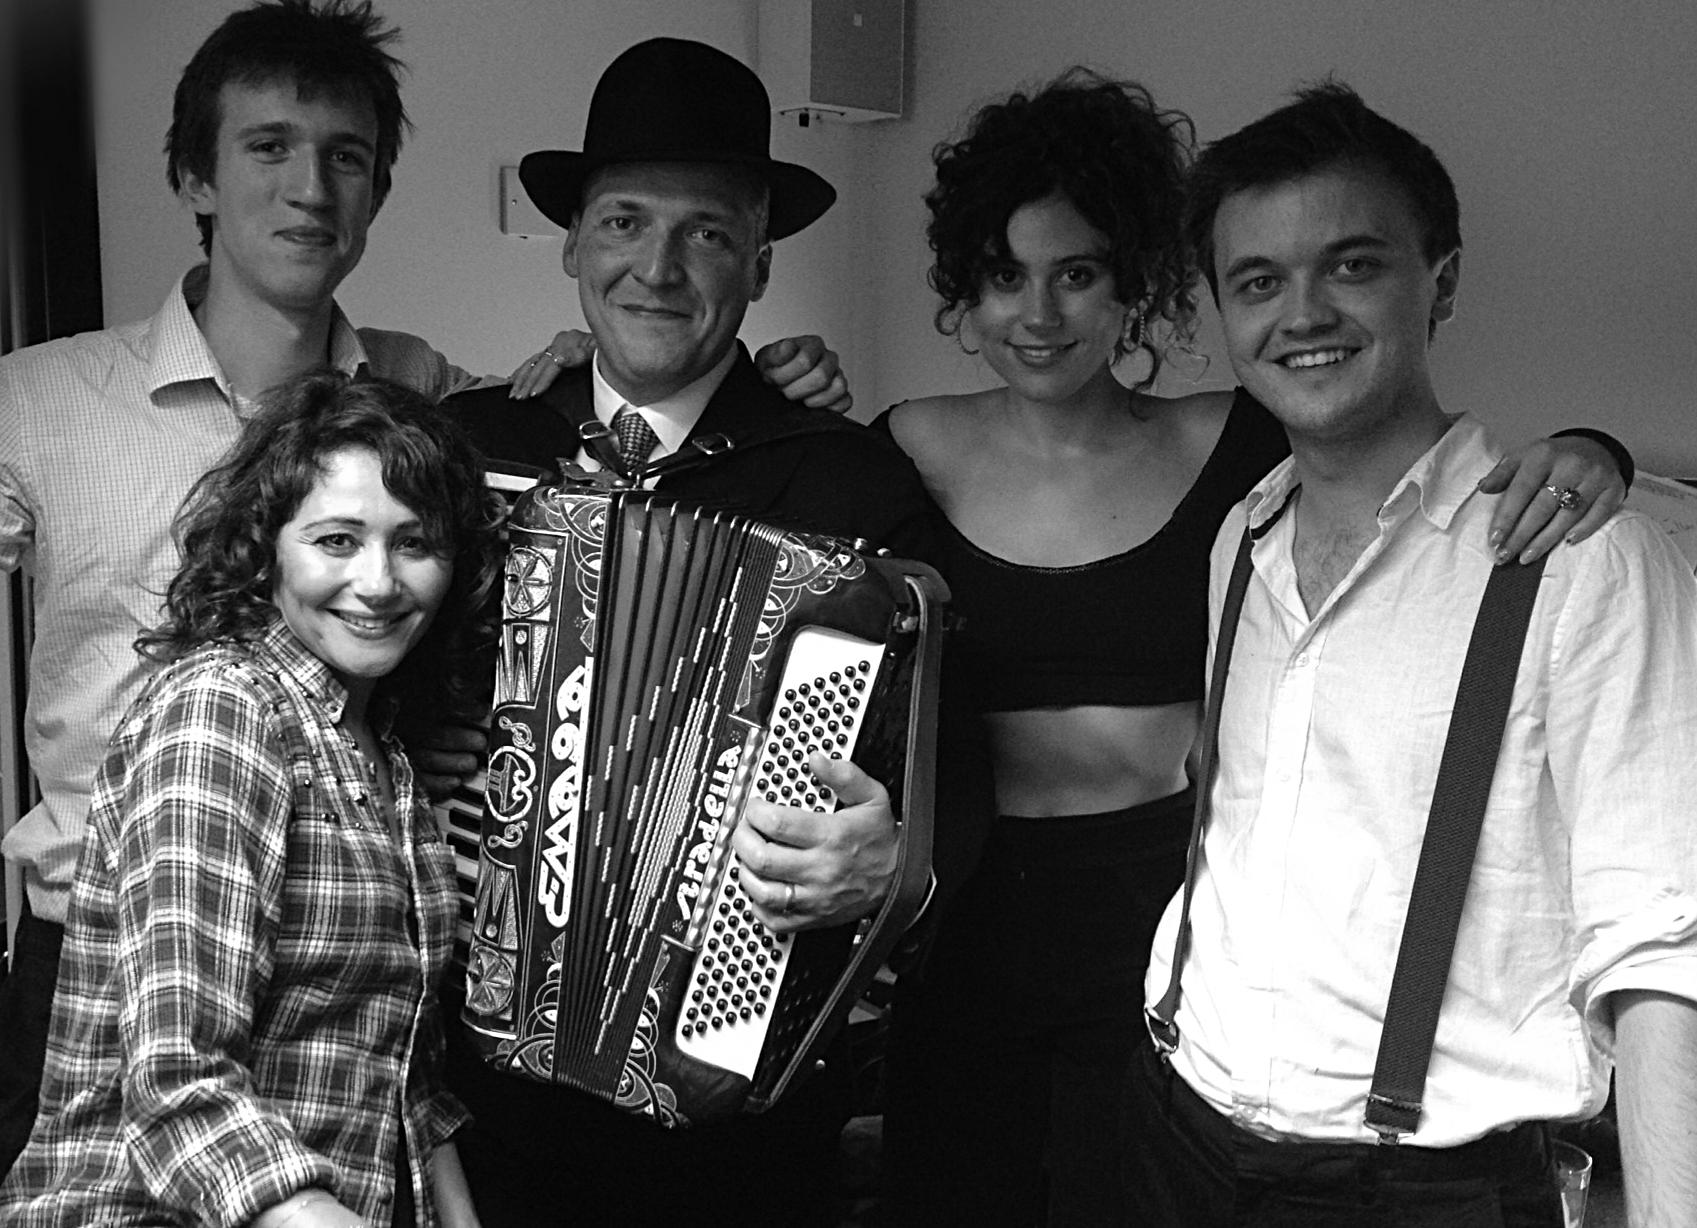 Pre-final show at The St James Theatre (or Other Palace): Misha Mullov-Abbado (bass), Frances Ruffelle, Romano Viazzani (accordion), Eliza Caird and Jude Obermüller